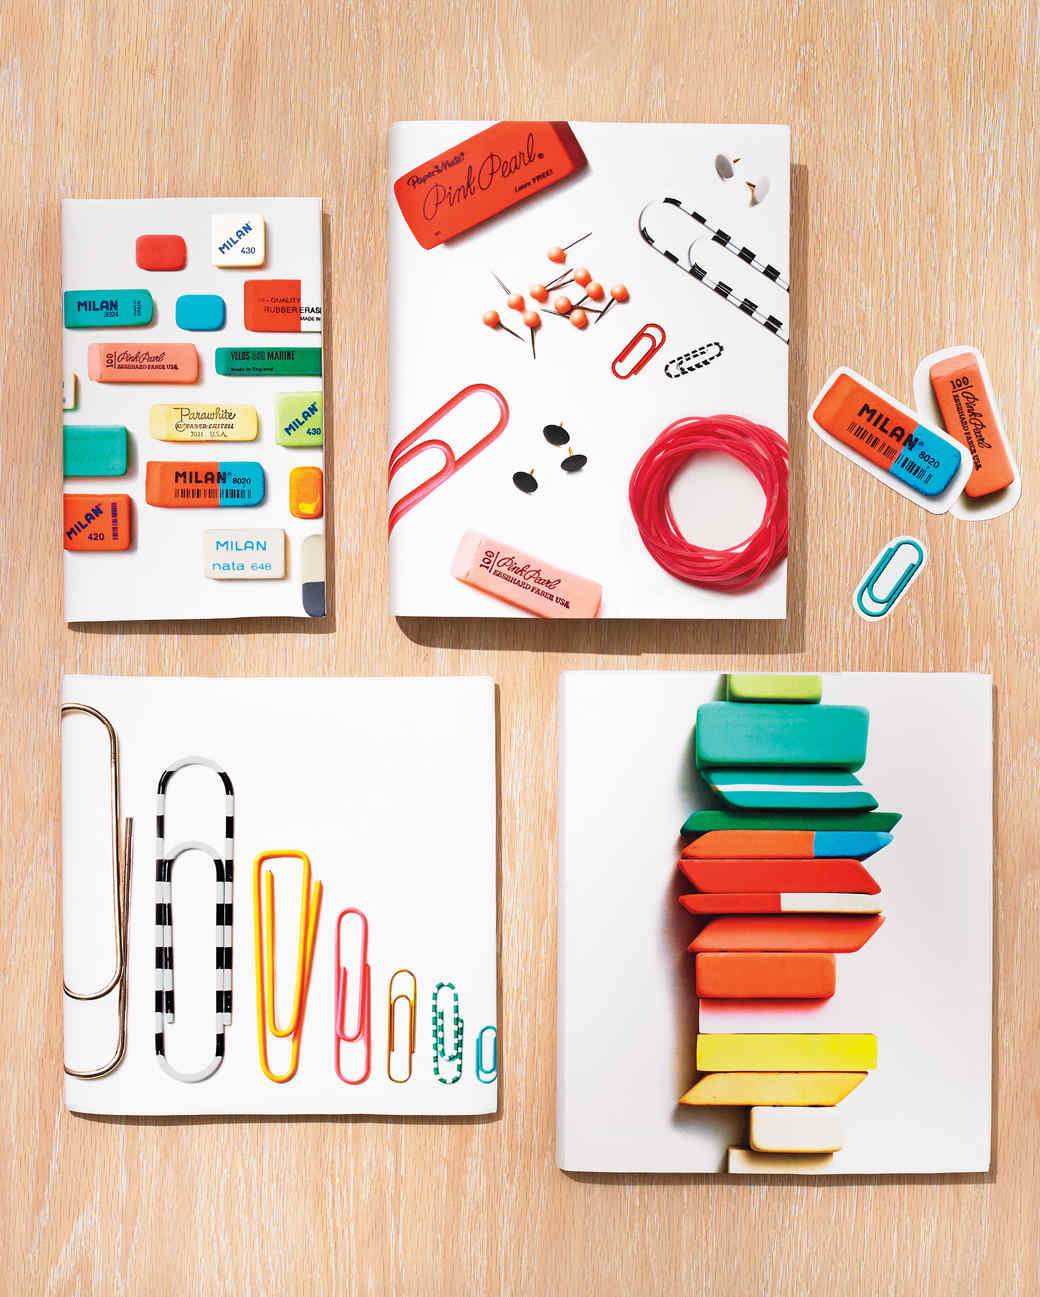 These are the Top Back-to-School Supplies This Year, According to Pinterest